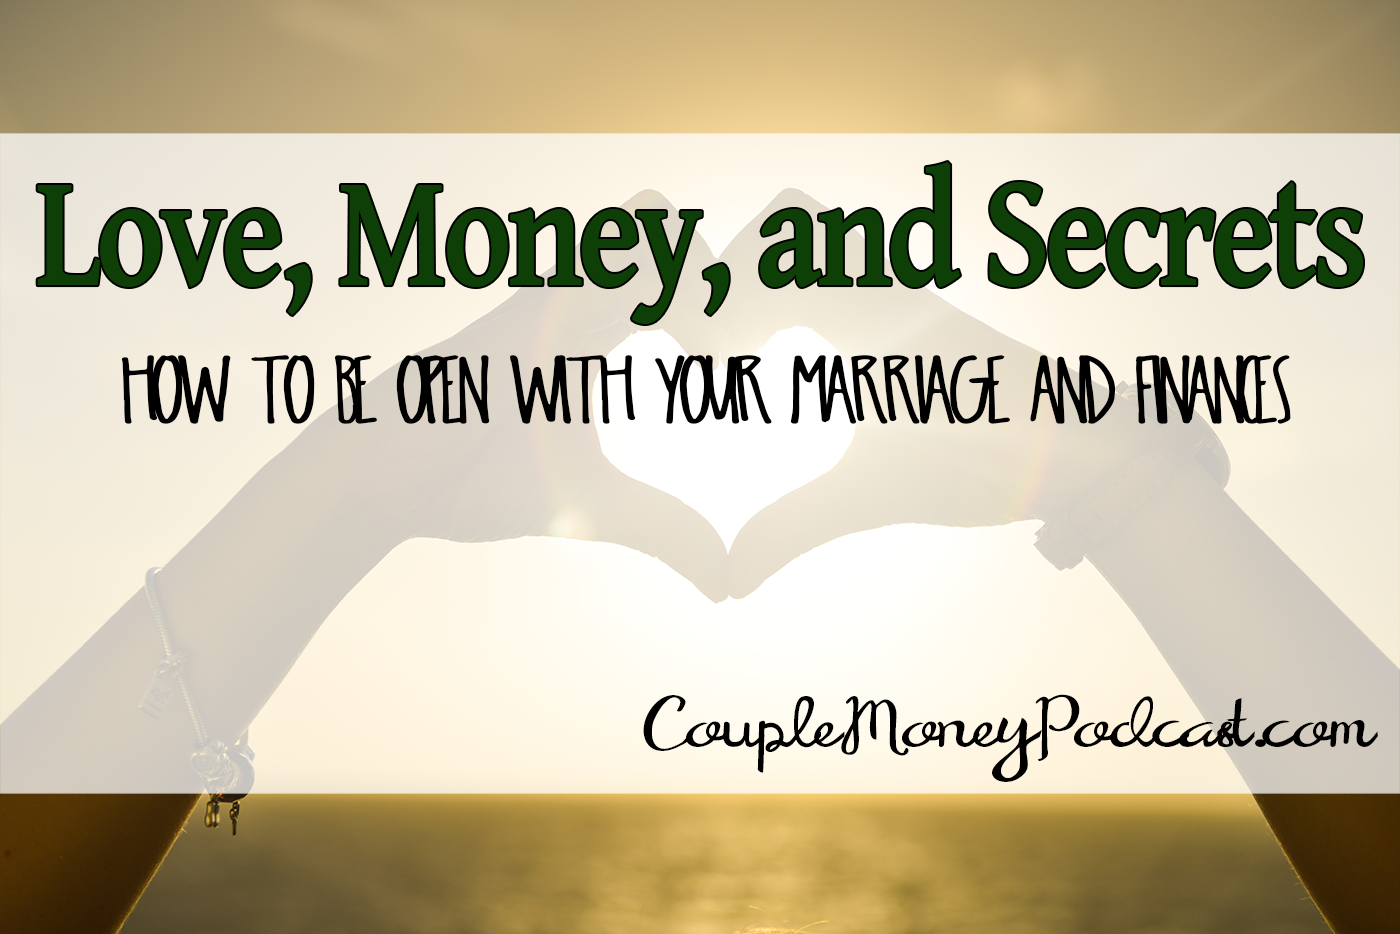 Learn How To Build Up Your Marriage By Being More Open About Money Love,  Money